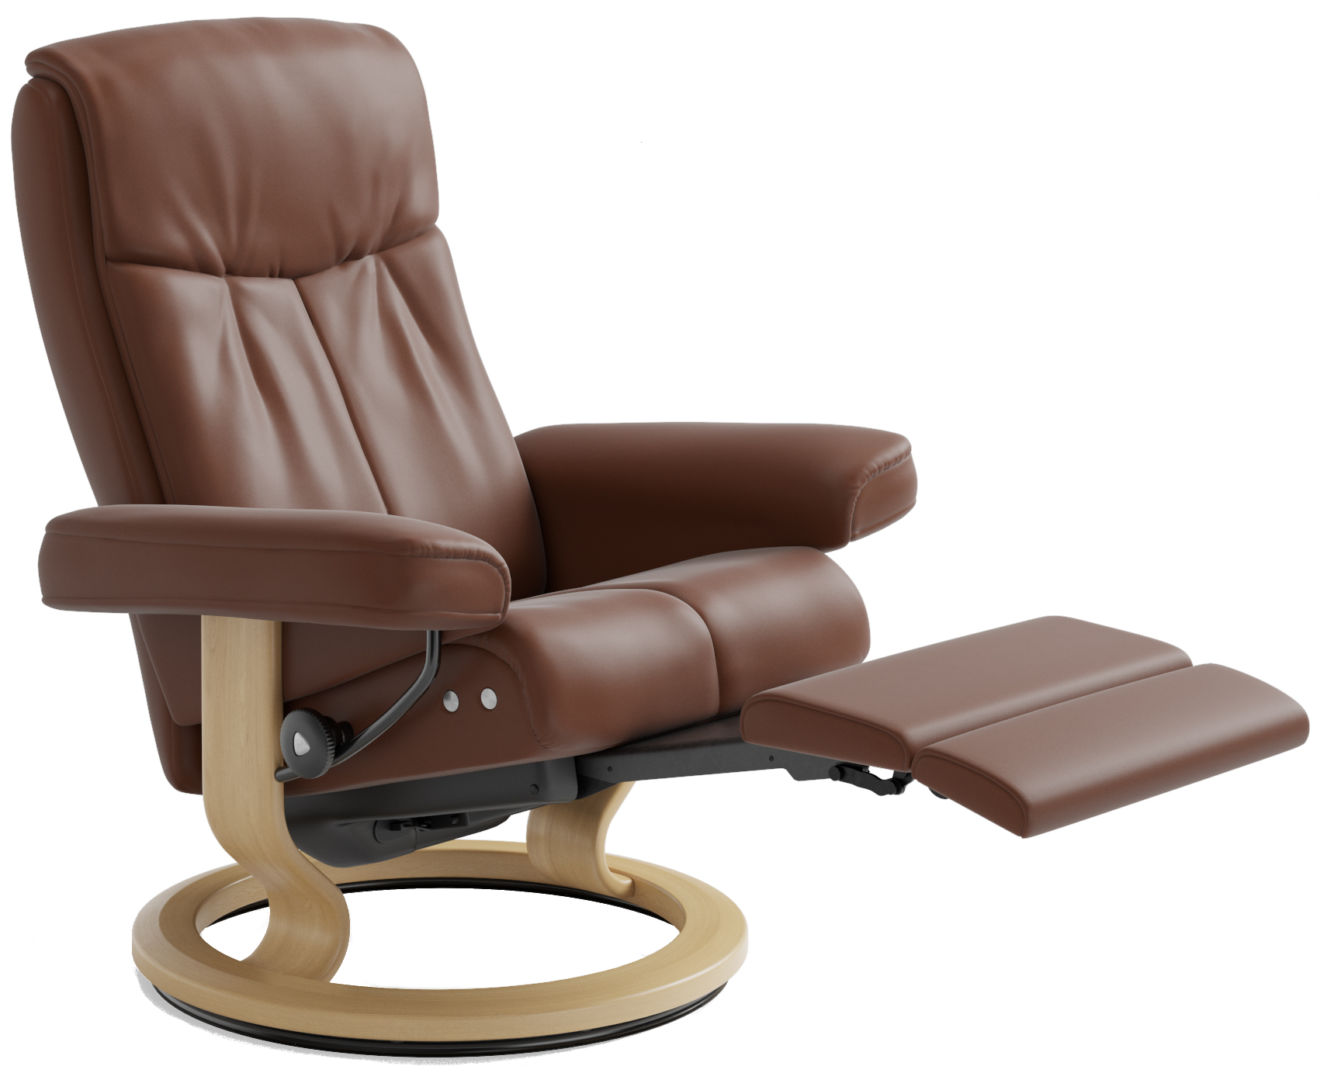 Stressless Peace Chair With LegComfort The Century House Madison WI